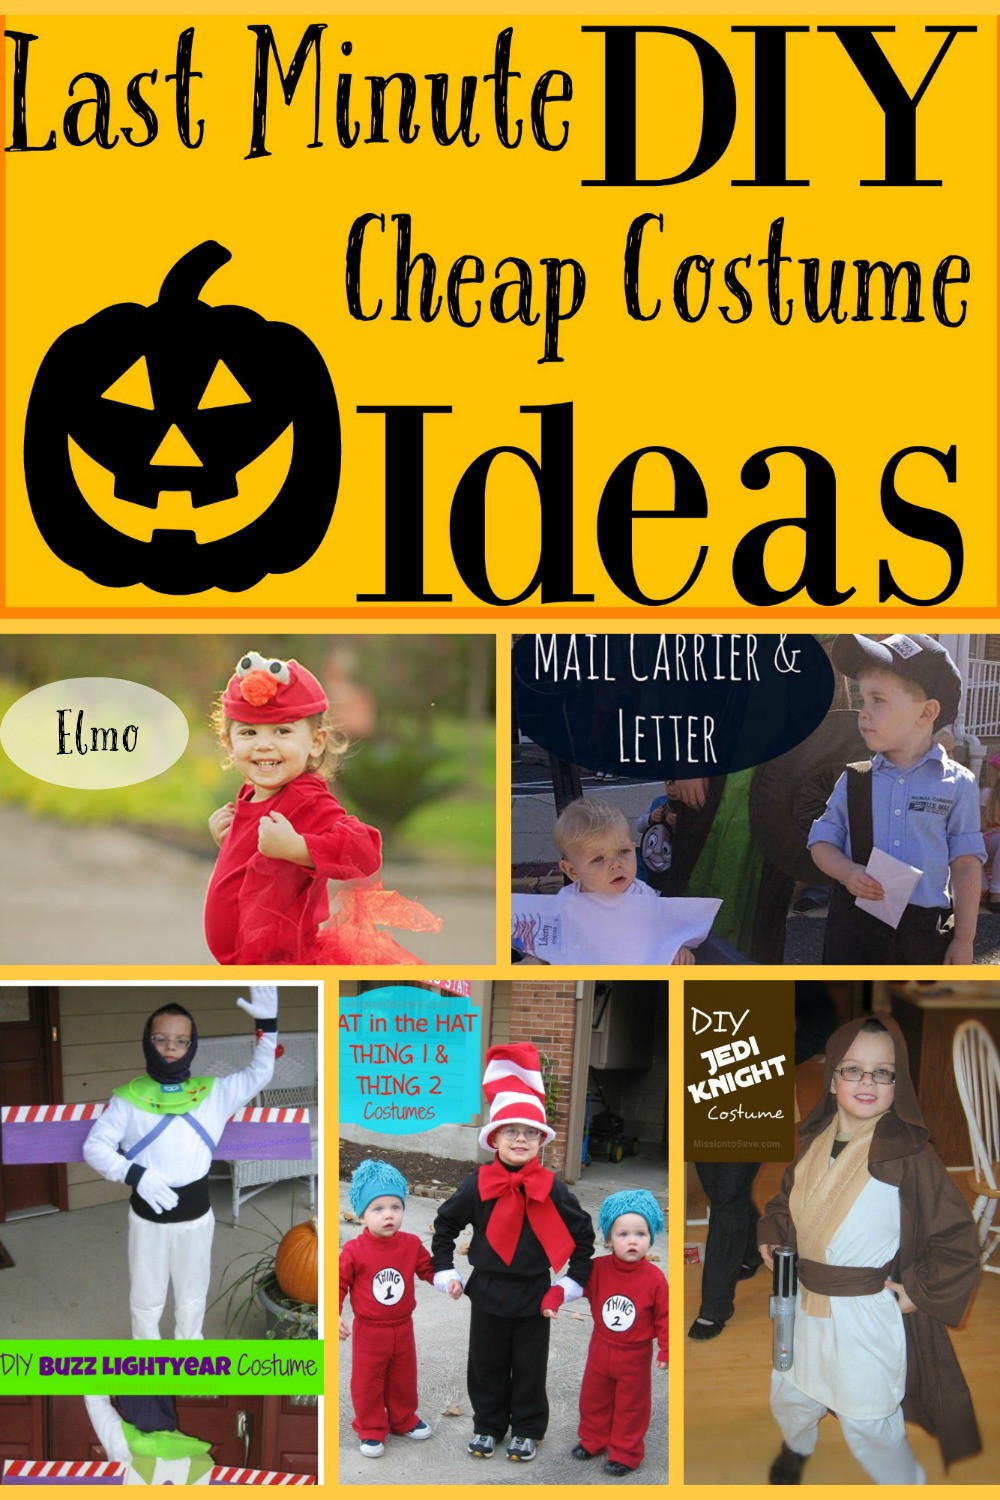 Best ideas about Last Minute DIY Costume . Save or Pin Last Minute Cheap DIY Halloween Costume Round Up The Now.